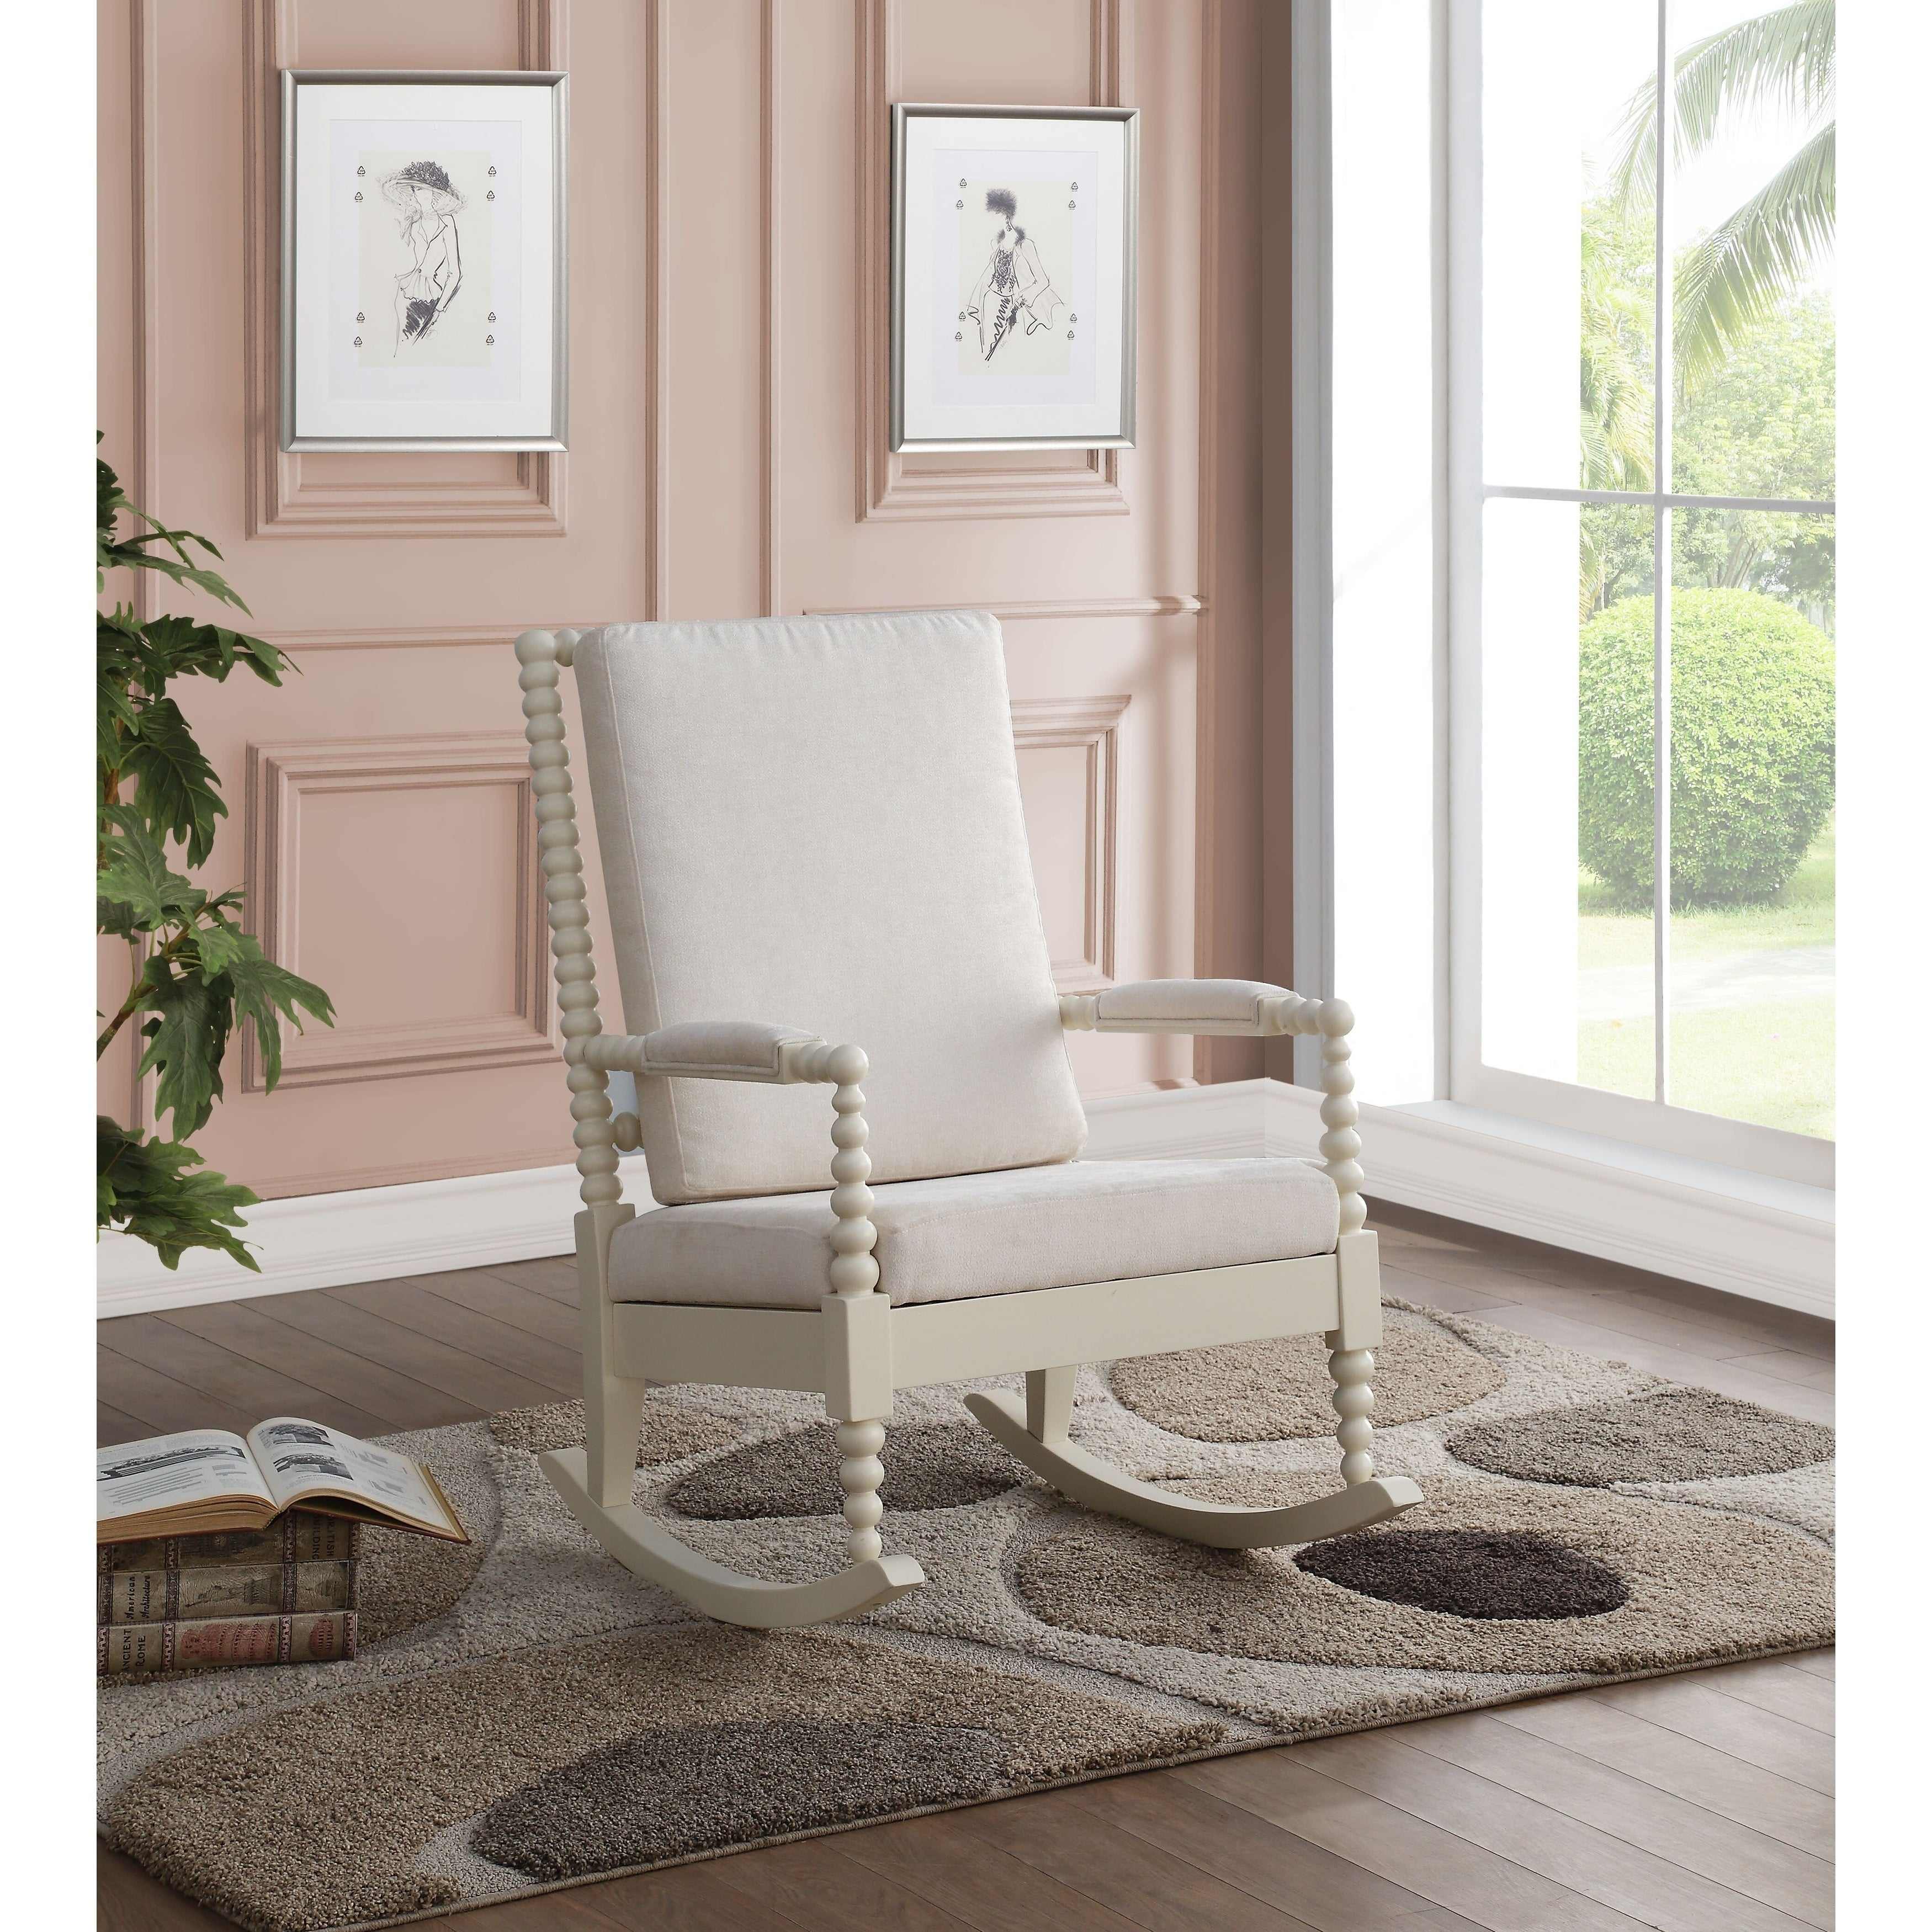 Popular Photo of Rocking Chairs In Cream Fabric And White